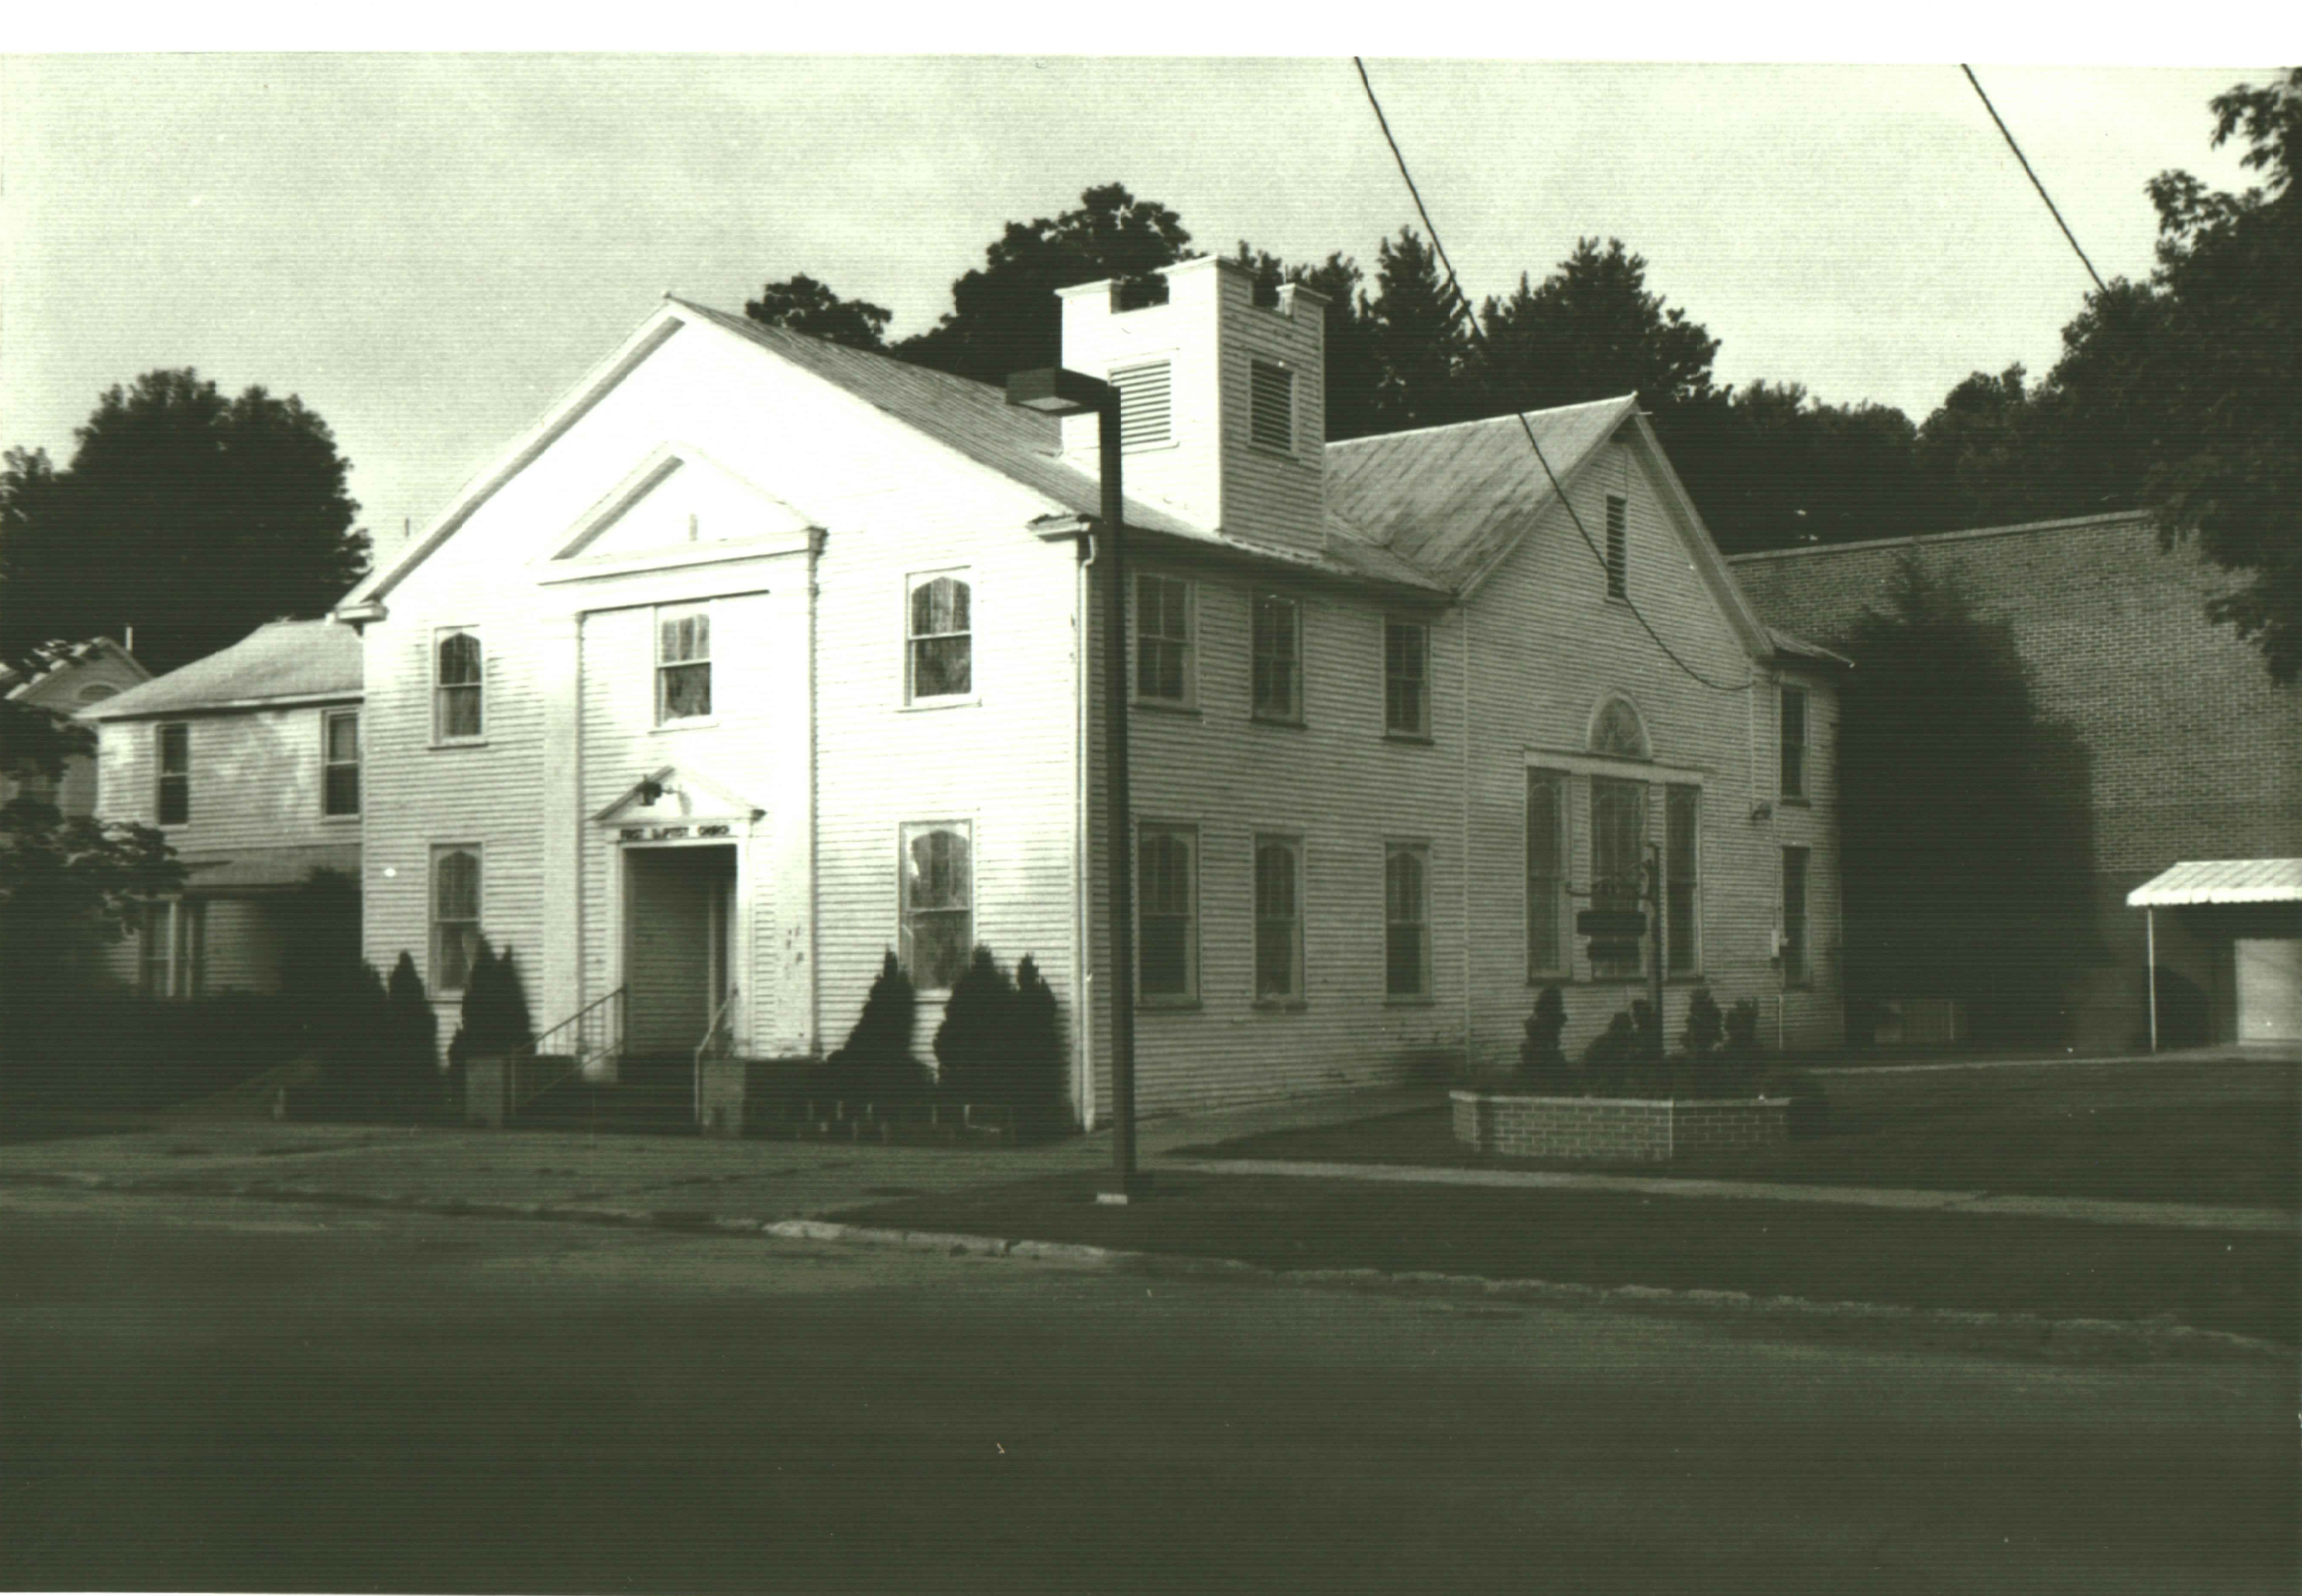 The original building in the 1980s, shortly before its demolition and replacement in 1987.